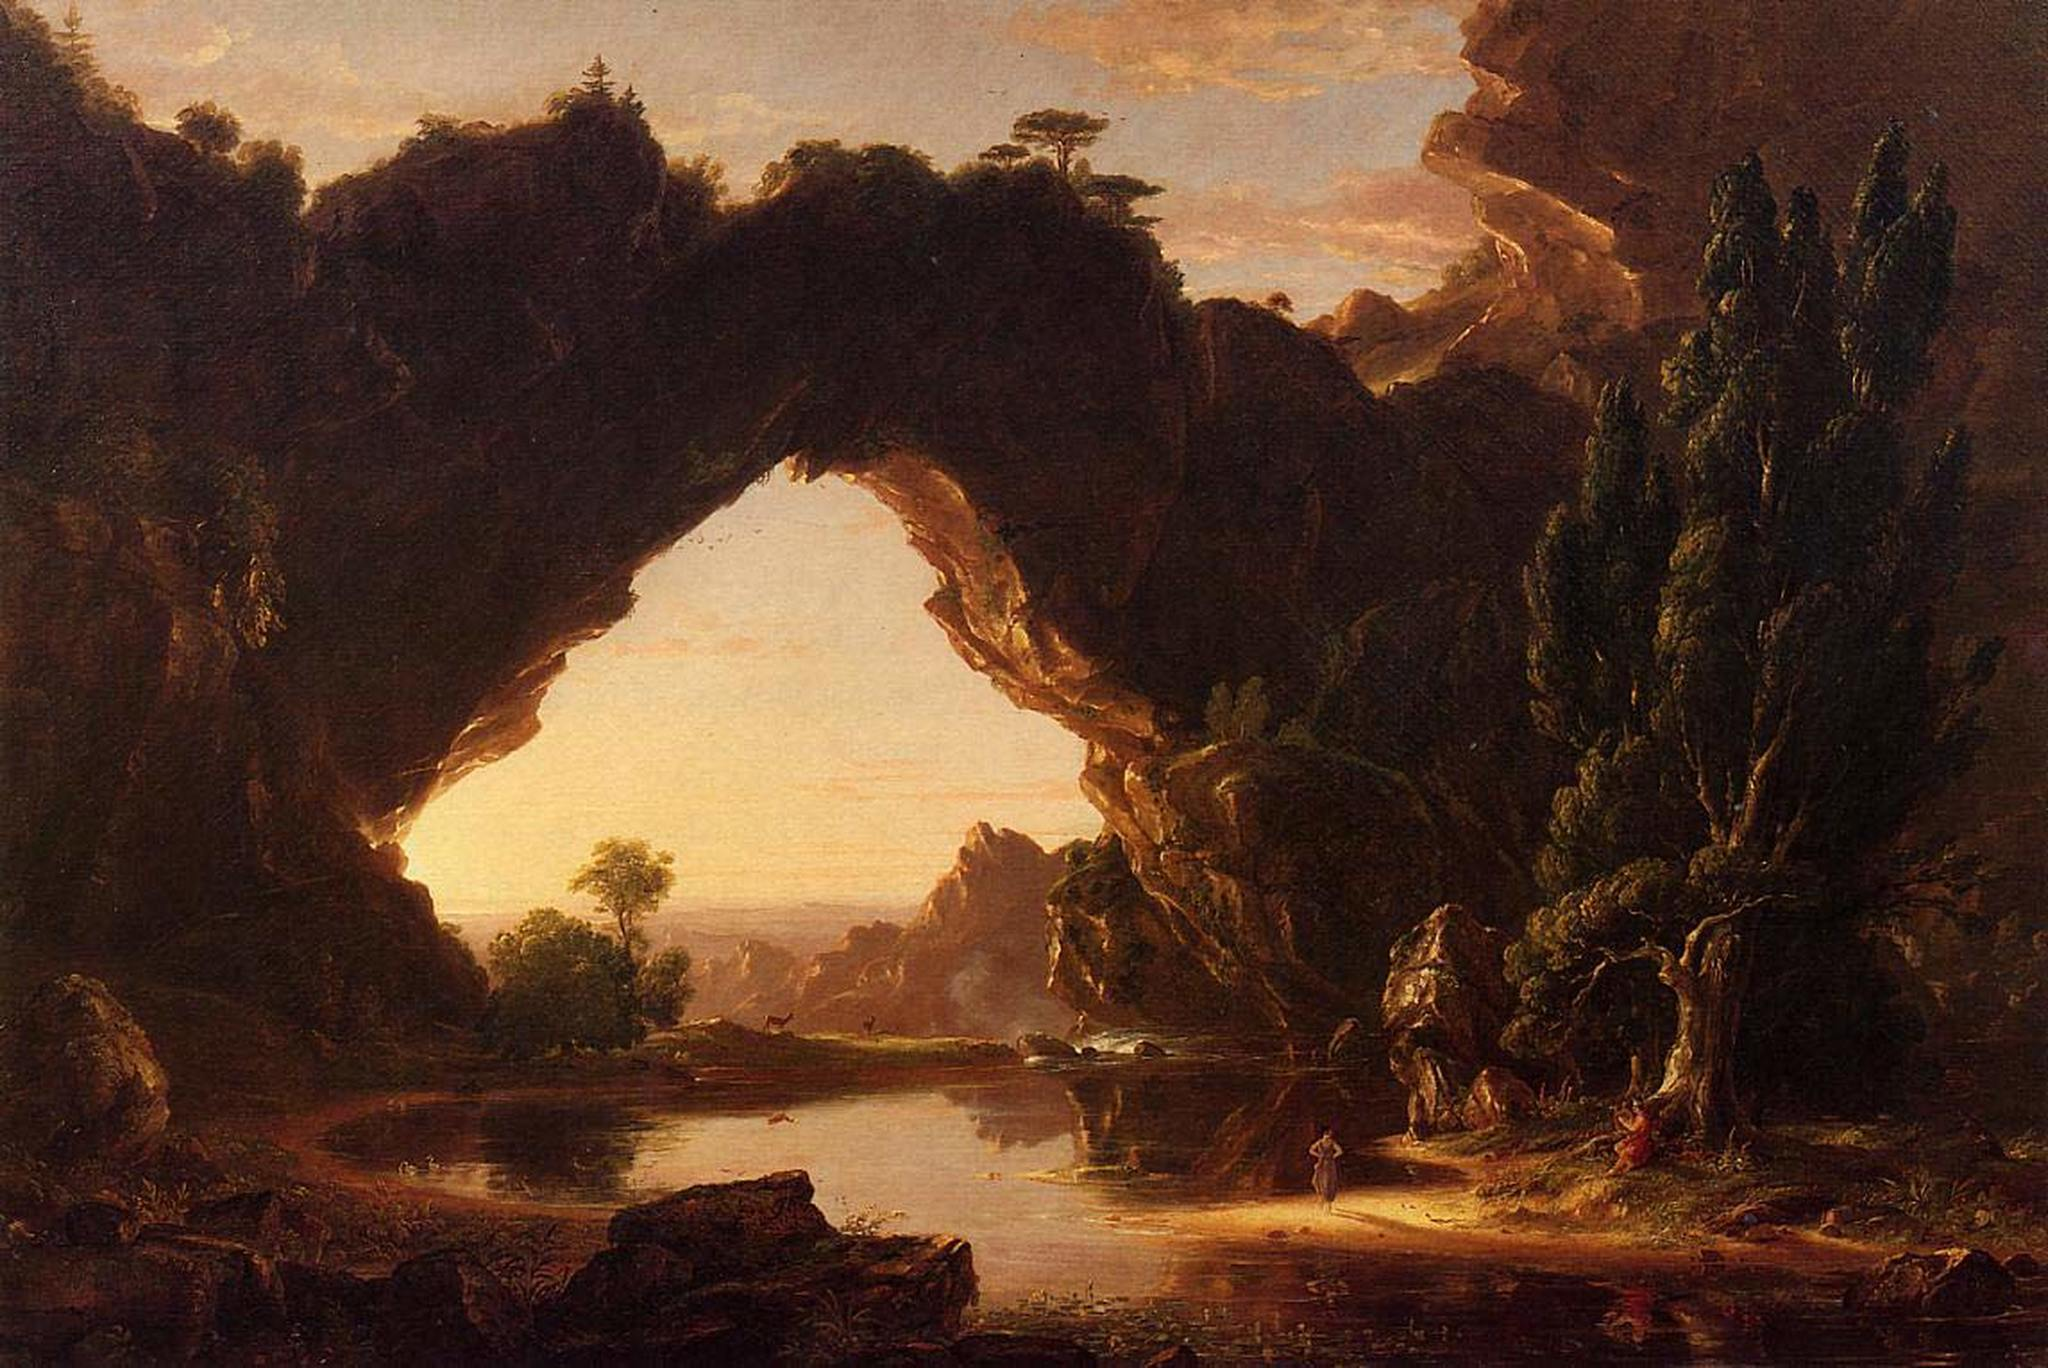 cole 1843 an-evening-in-arcadia Wadsworth Atheneum, Hartford